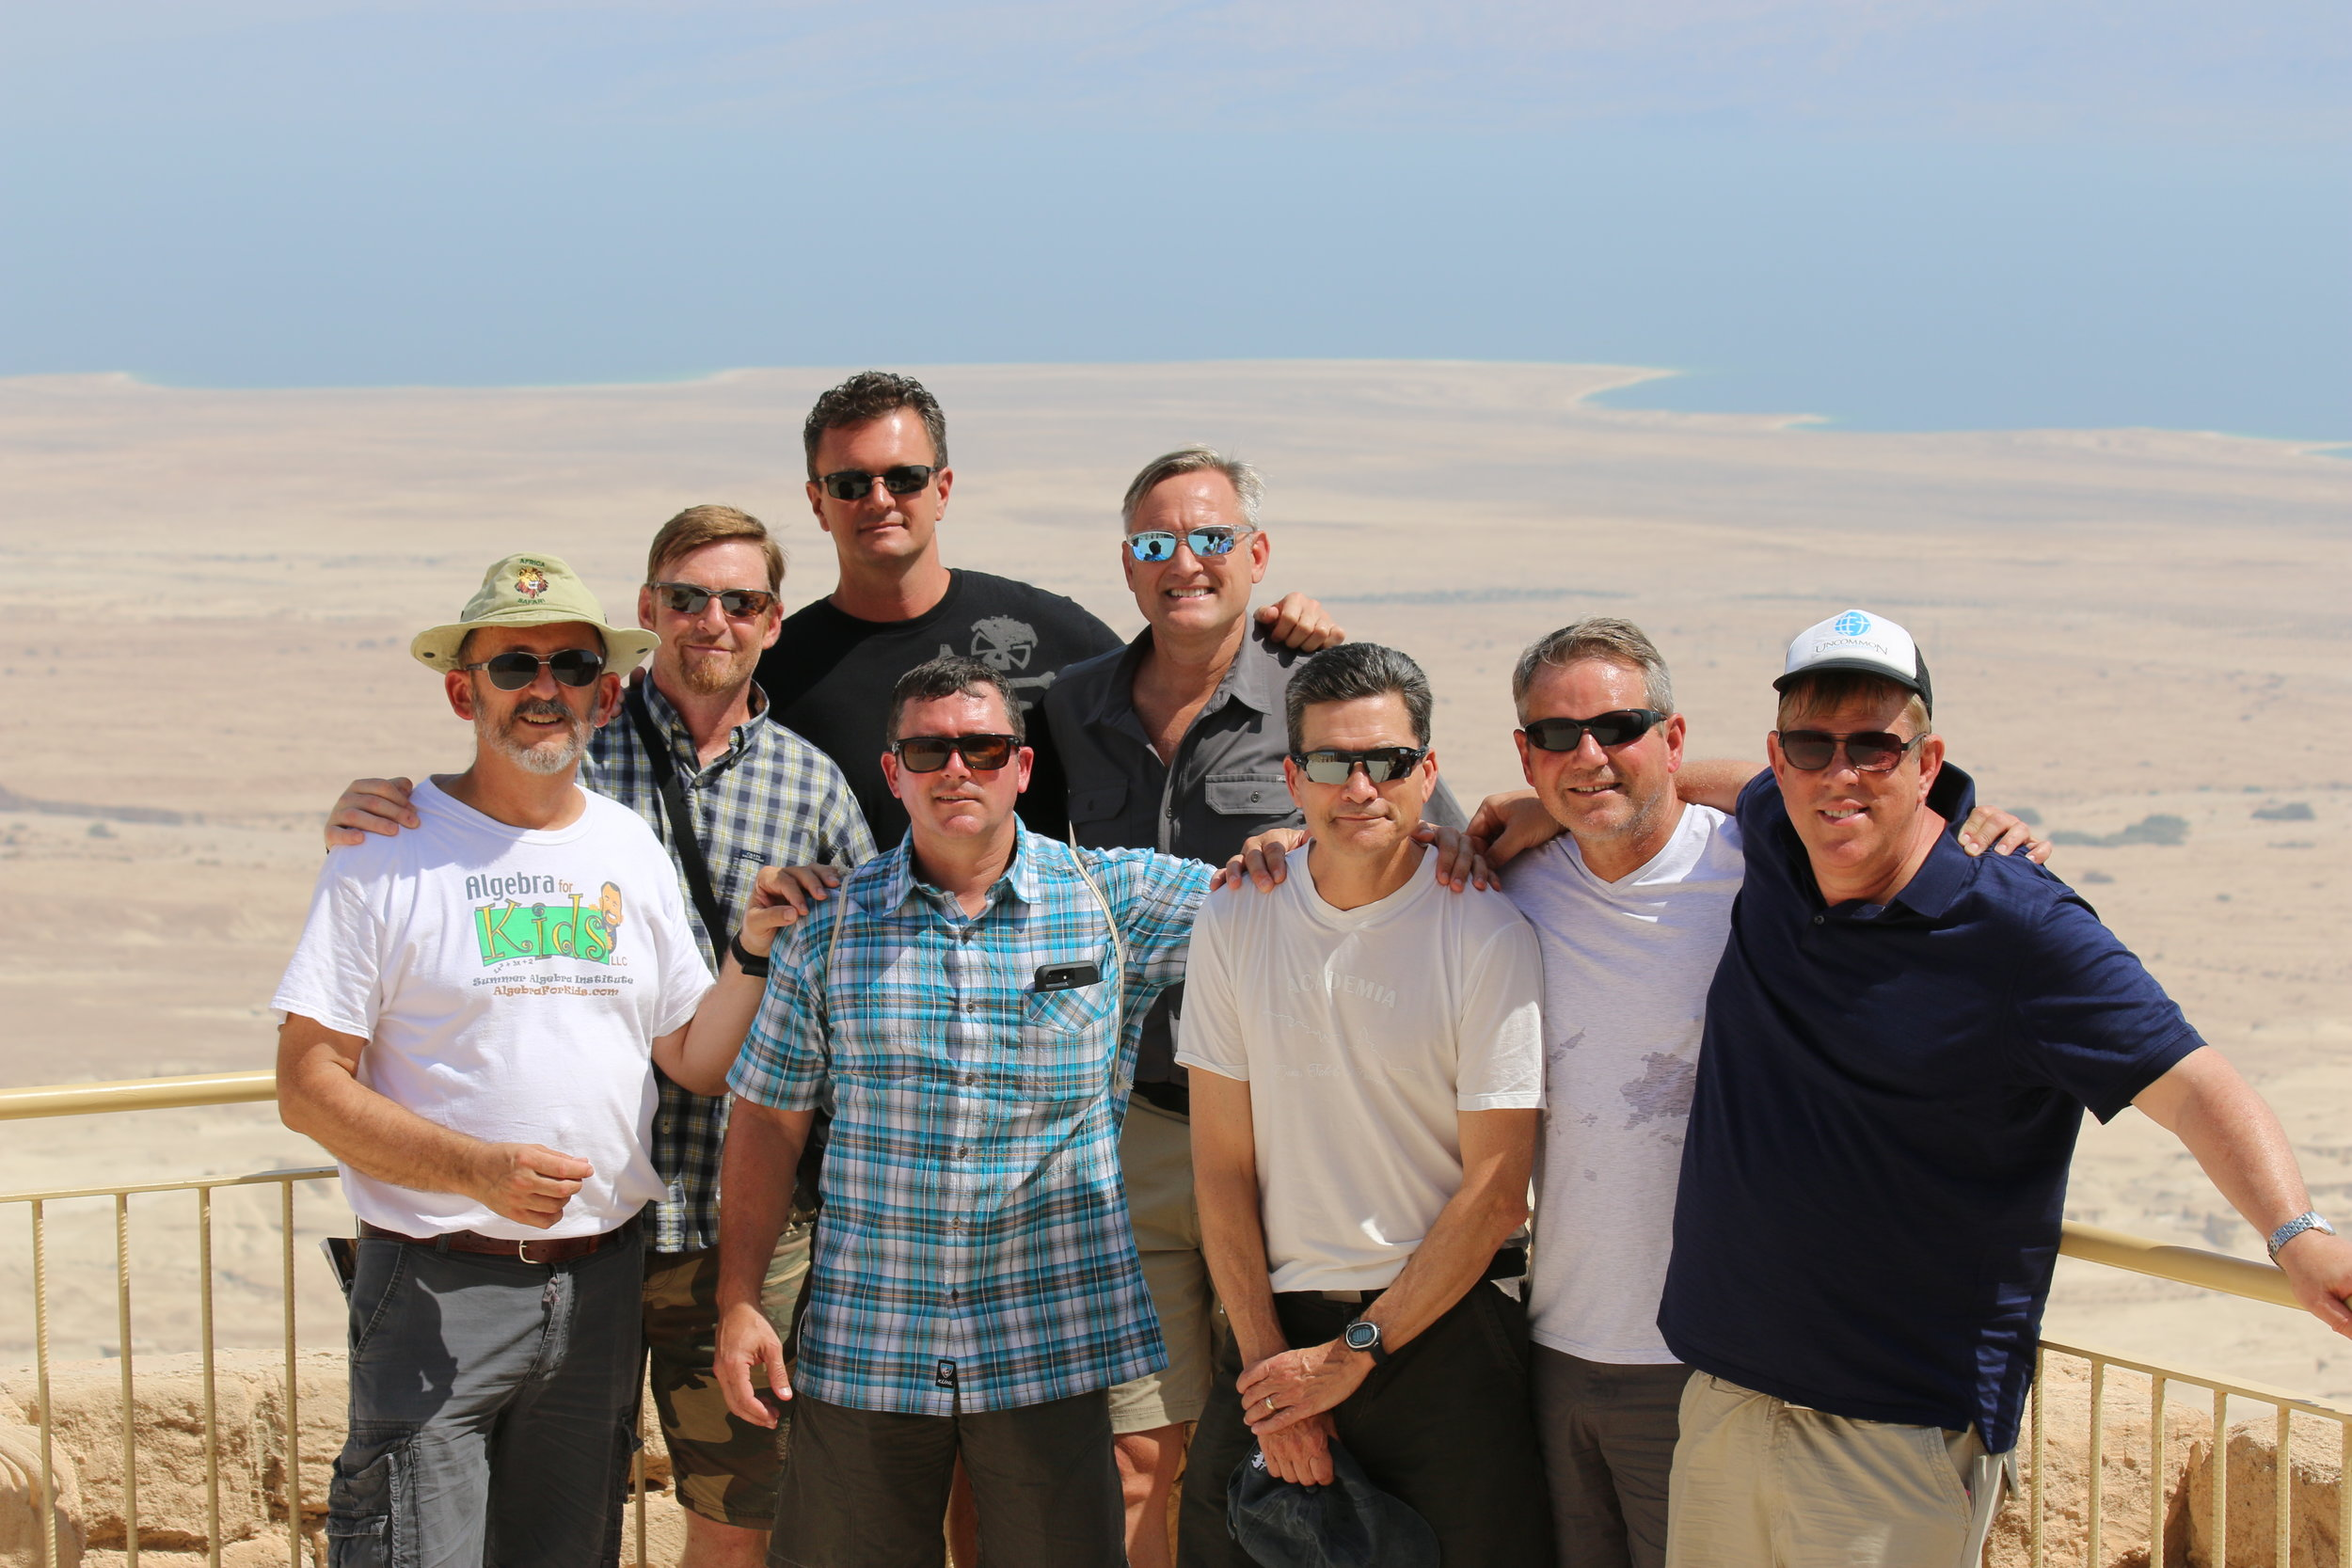 Some members of a retreat for Leaders atop of the Masada ruins by the Dead Sea